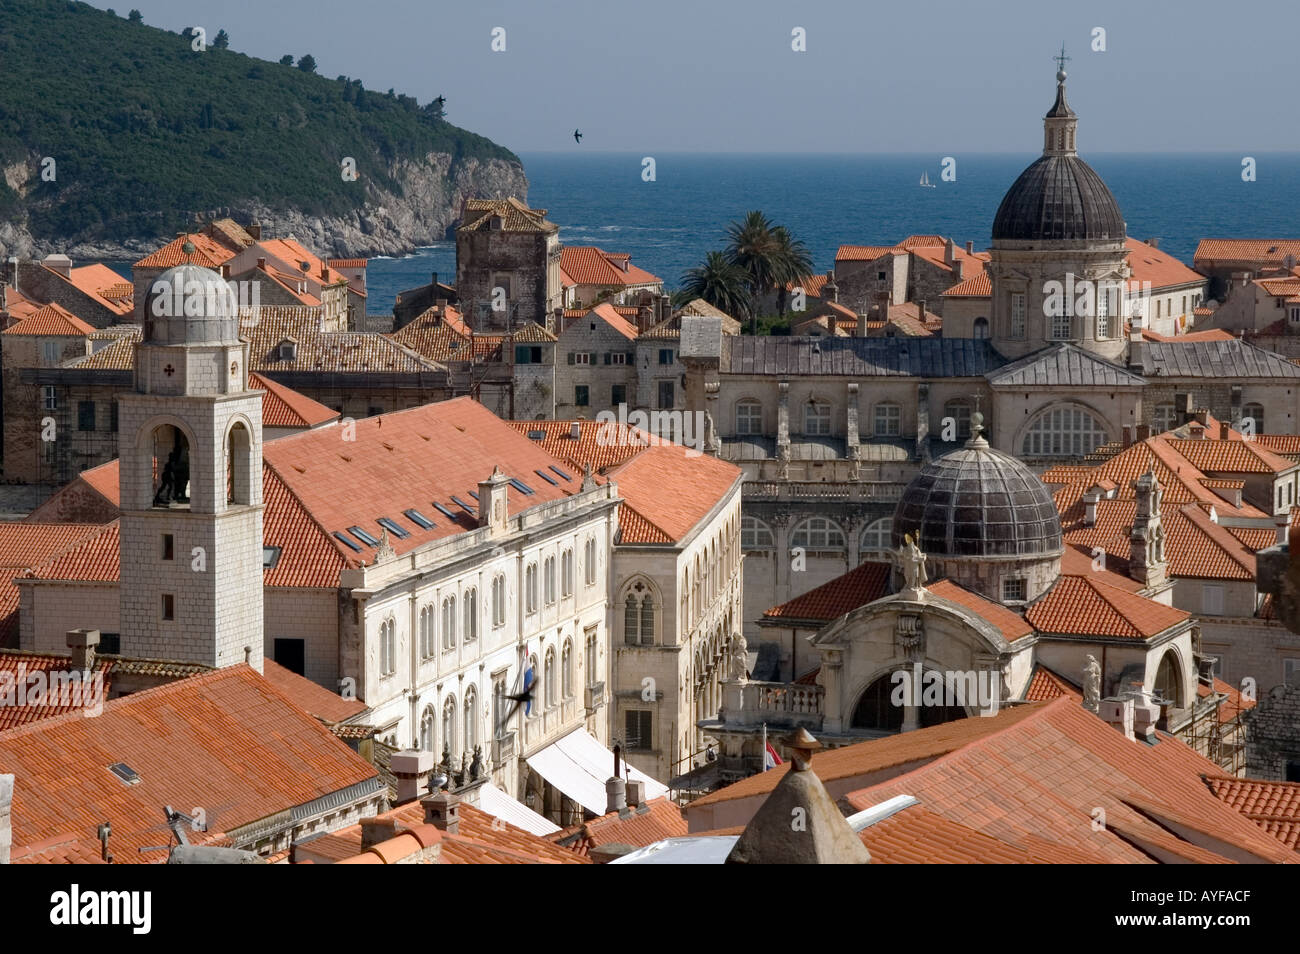 Stock Photo - The skyline of Dubrovnik Croatia showing the terracotta roofs : terracotta roofs - memphite.com